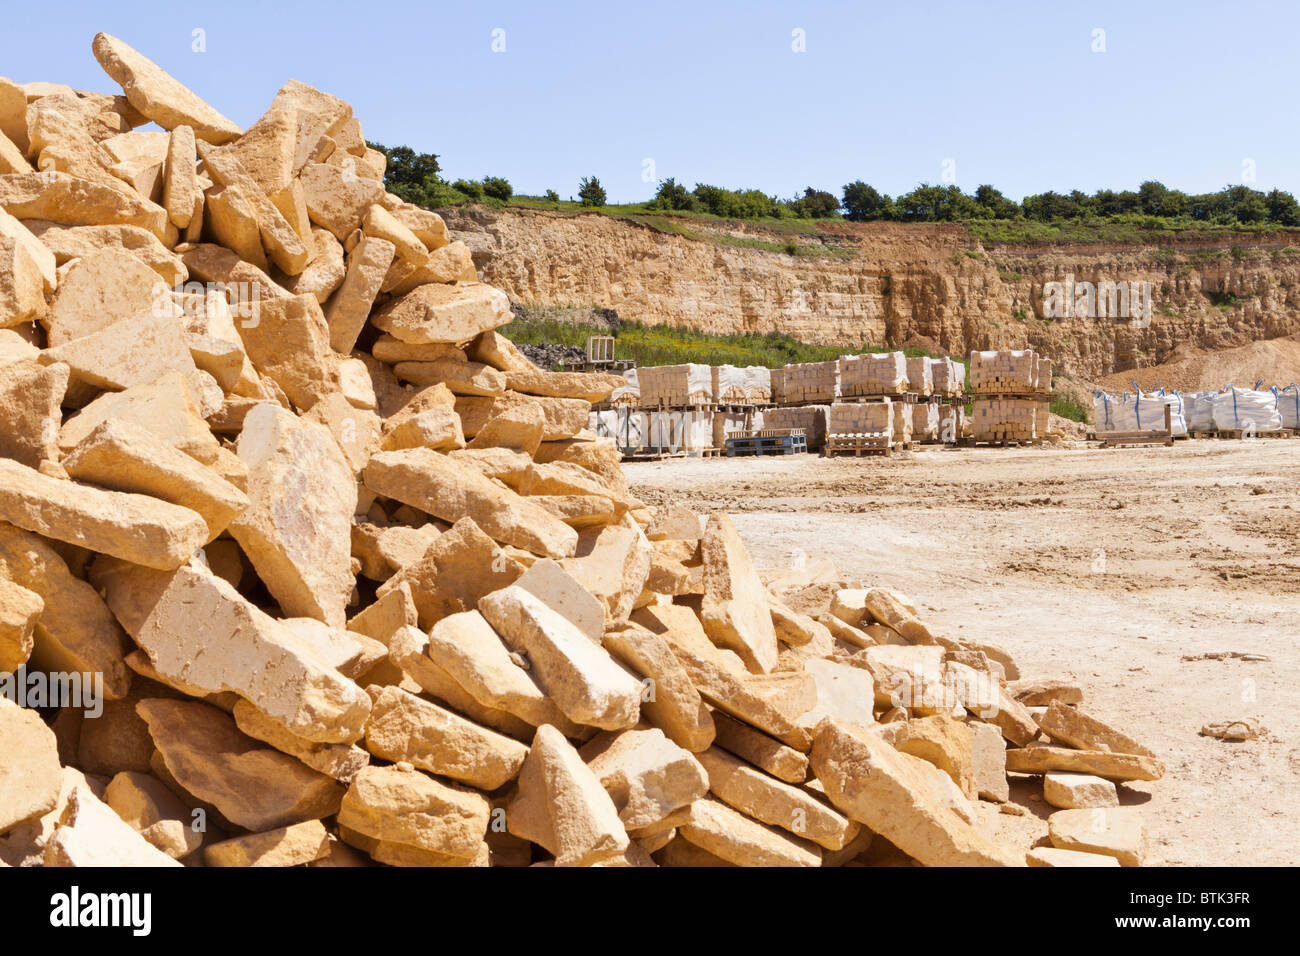 Cotswold oolitic limestone (from the Inferior Oolite of middle Jurassic age) in the Cotswold Hill Quarry, Ford, - Stock Image